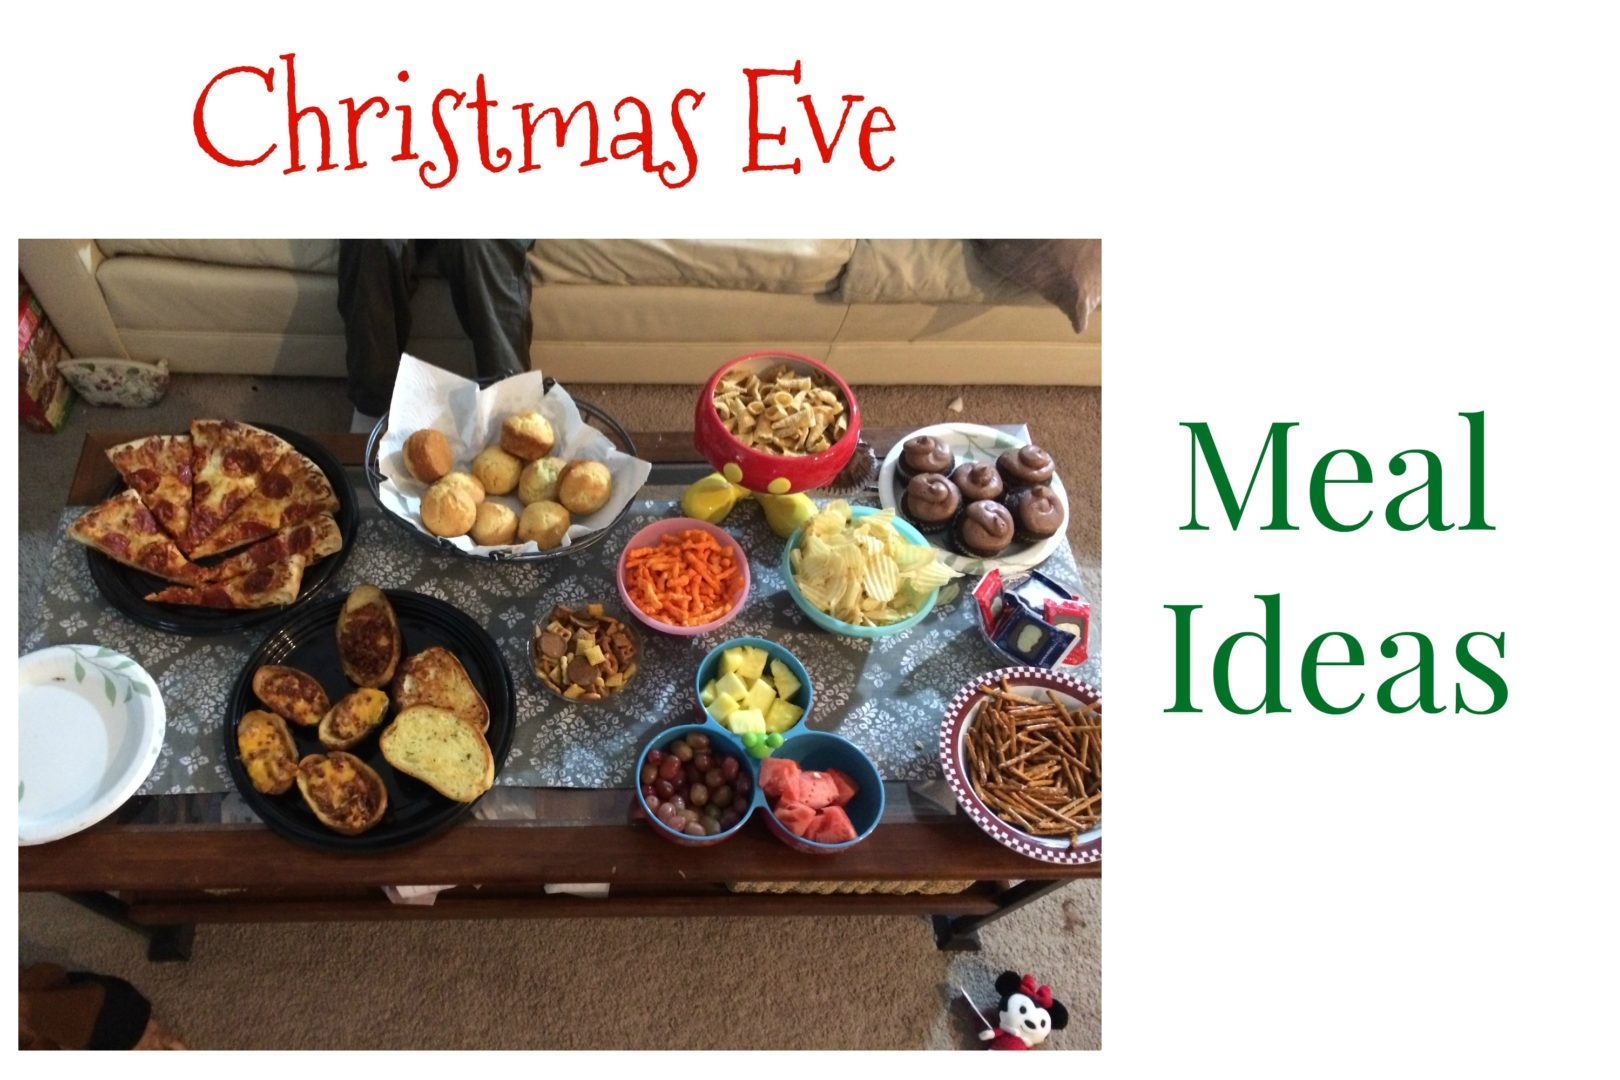 Christmas Eve Meal Ideas | AlwaysMovingMommy.com | Need some ideas to make your Christmas dinner more exciting?  Check out these recipes to add some new dishes to your menu this year.